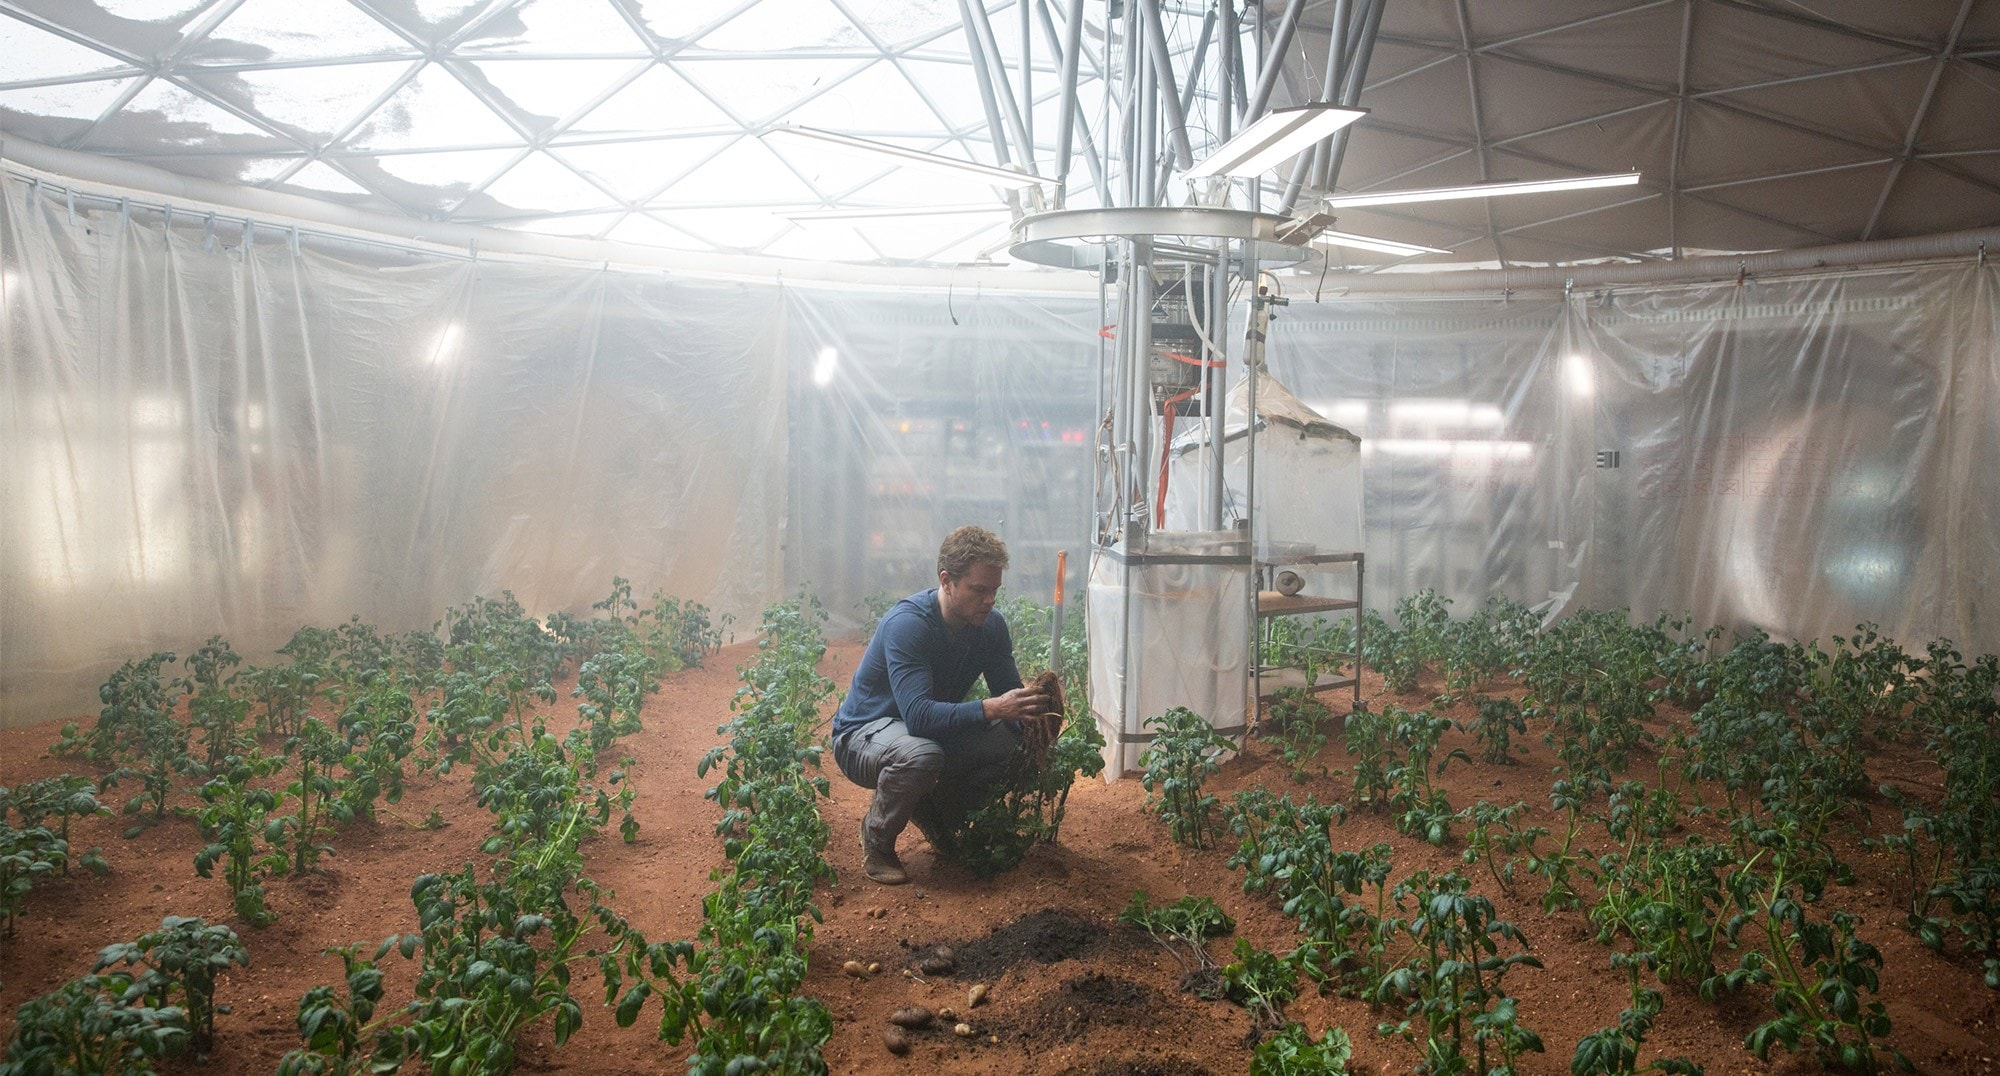 The Martian Widescreen